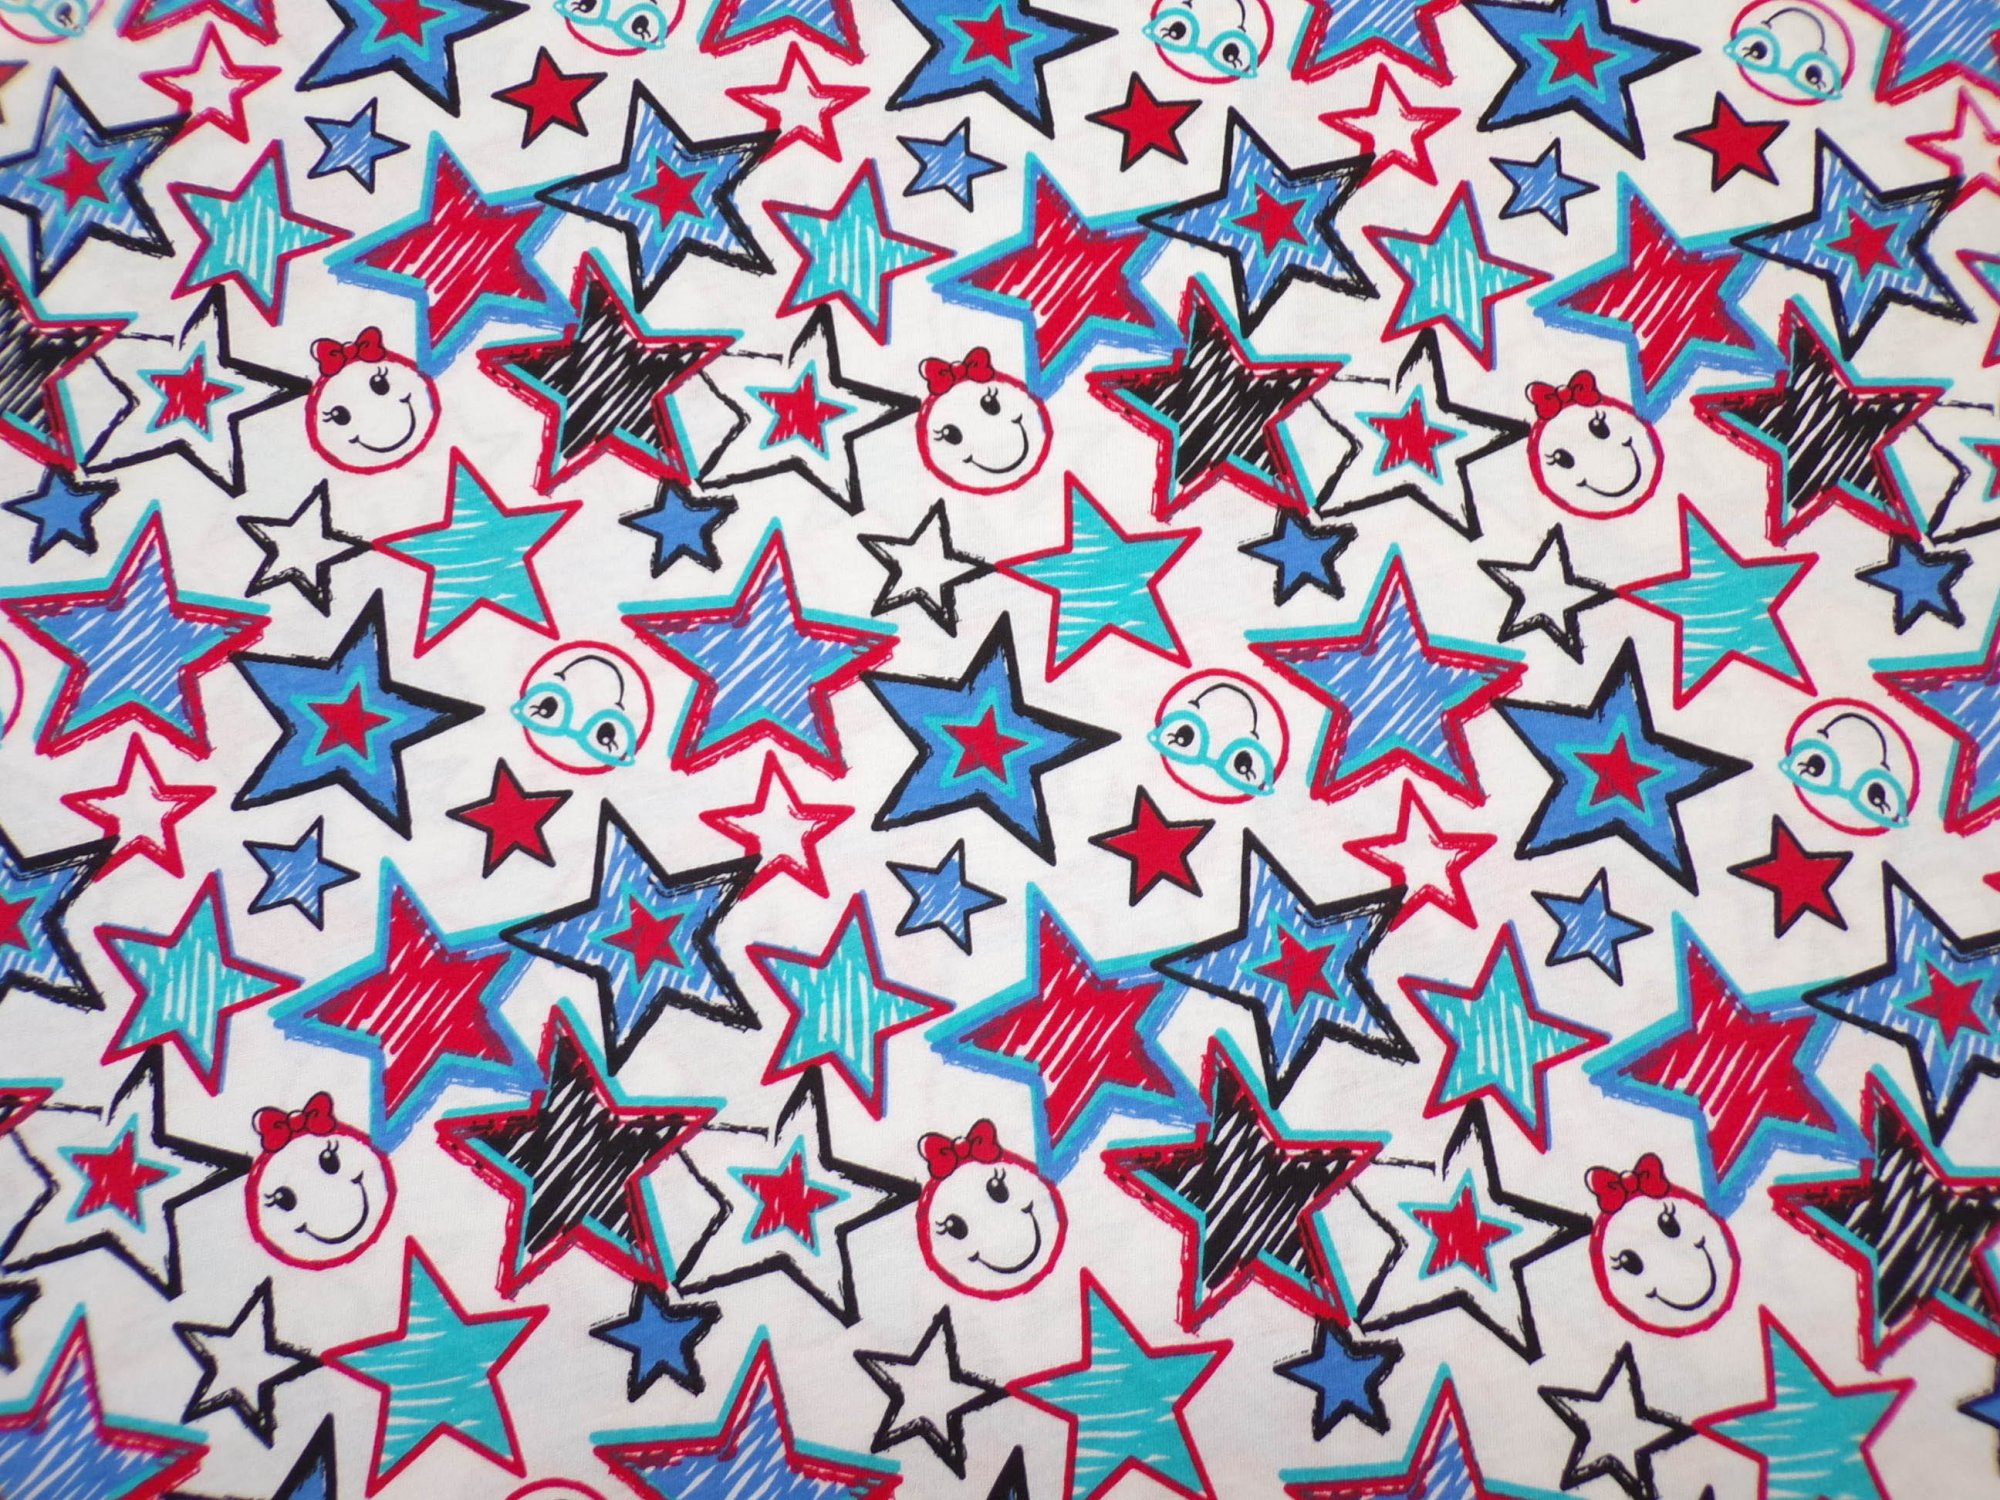 Cotton Jersey - Red White and Blue Stars on White